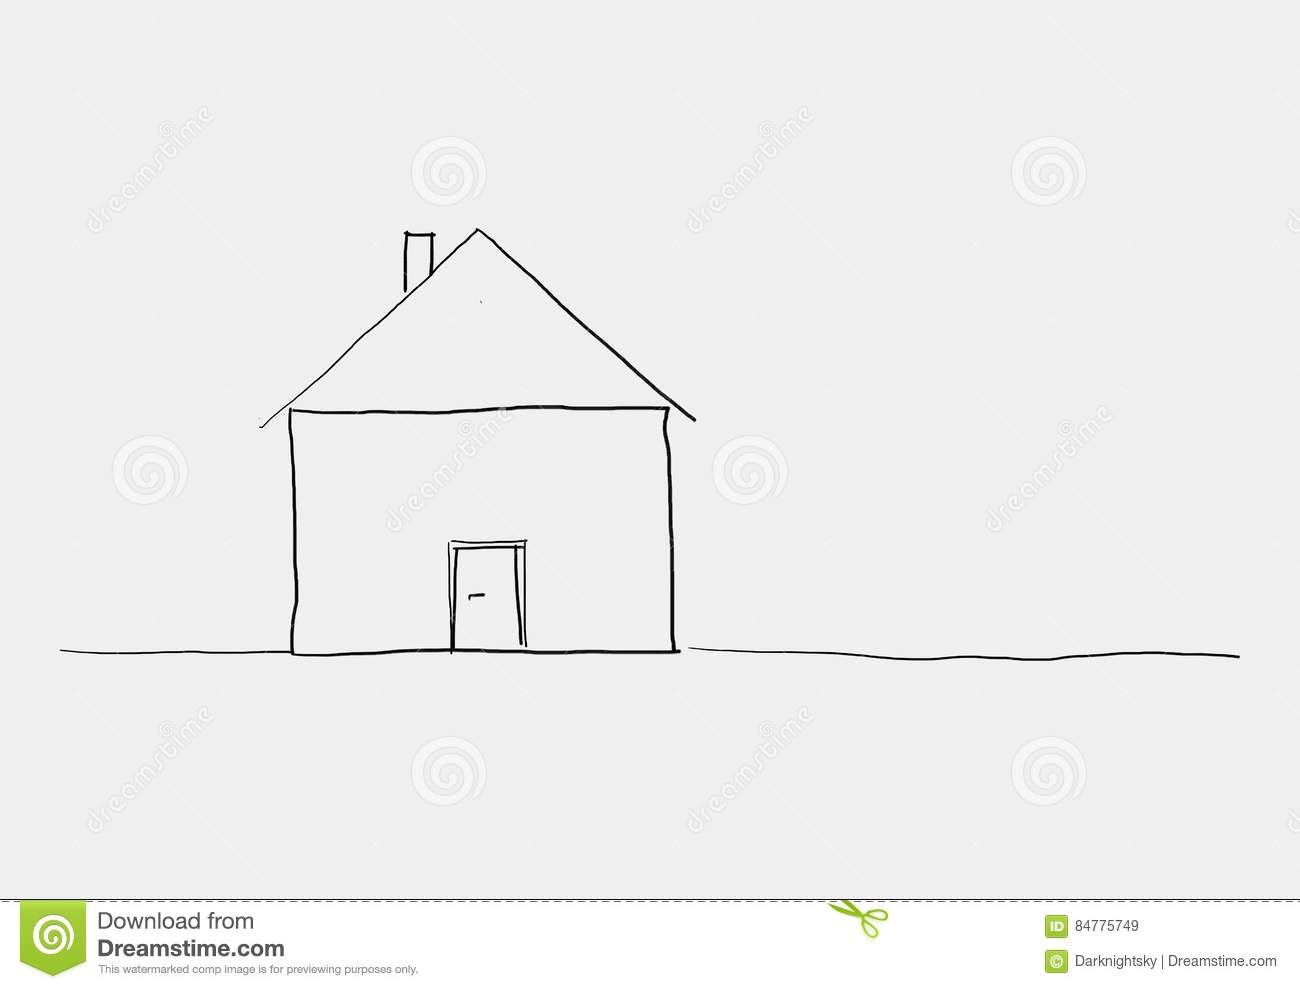 Croquis Maison Simple Sketh Mignon De Maison Illustration Stock Illustration Du Idées